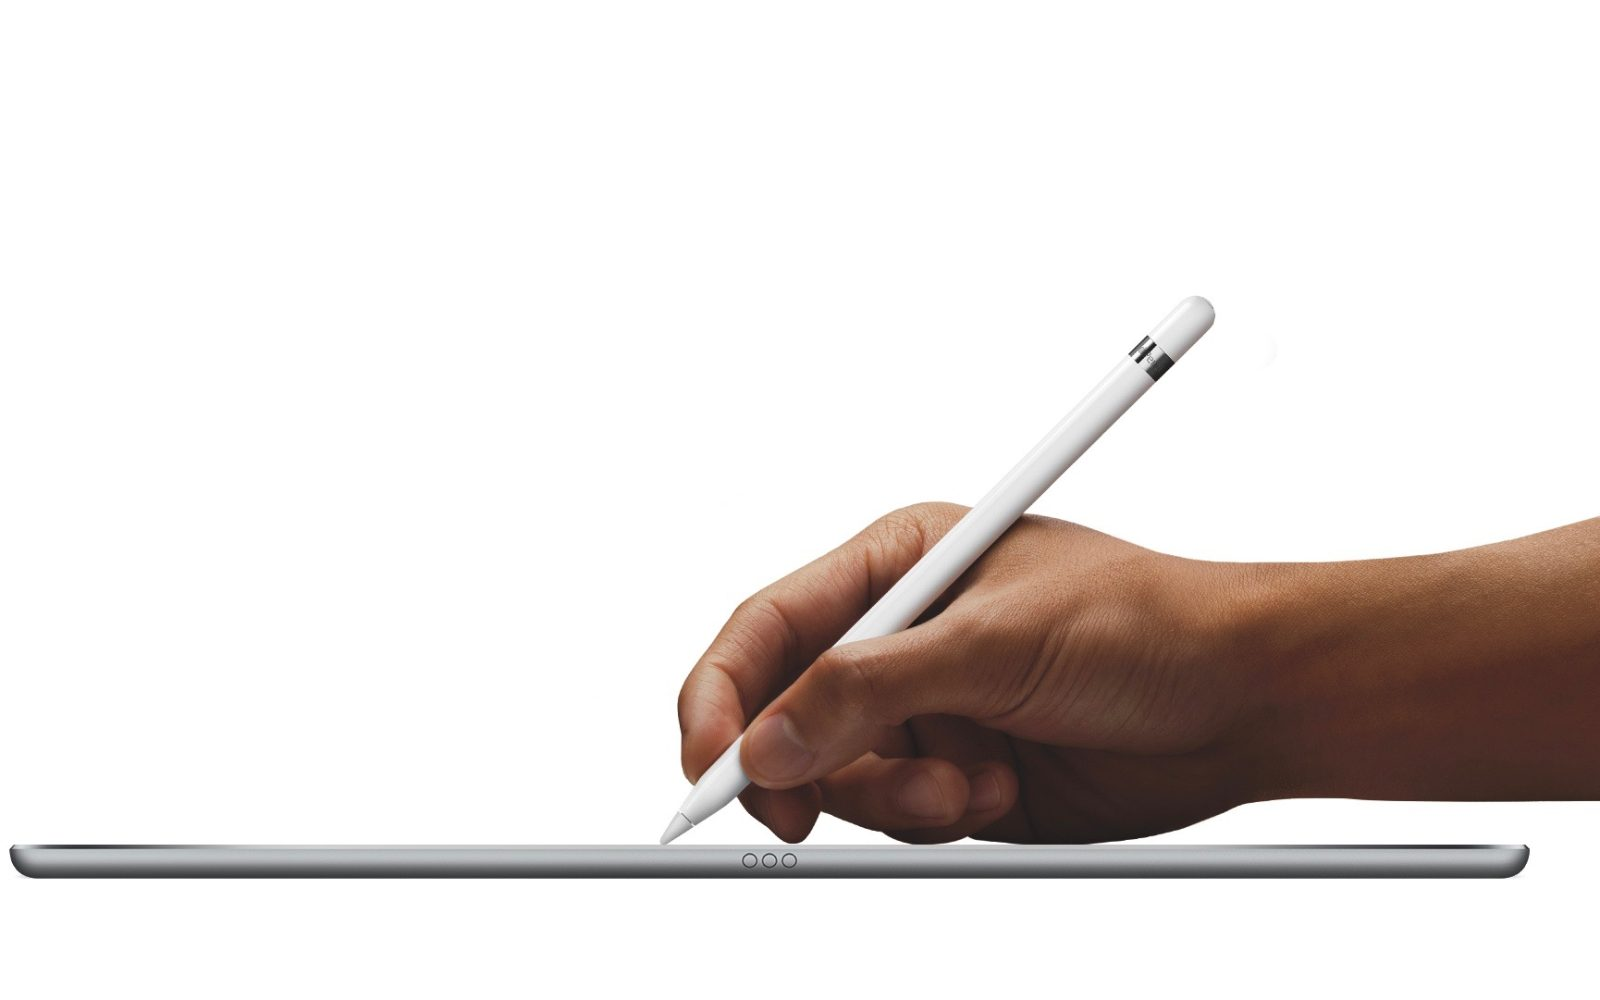 The best iOS apps for taking notes with Apple Pencil + iPad